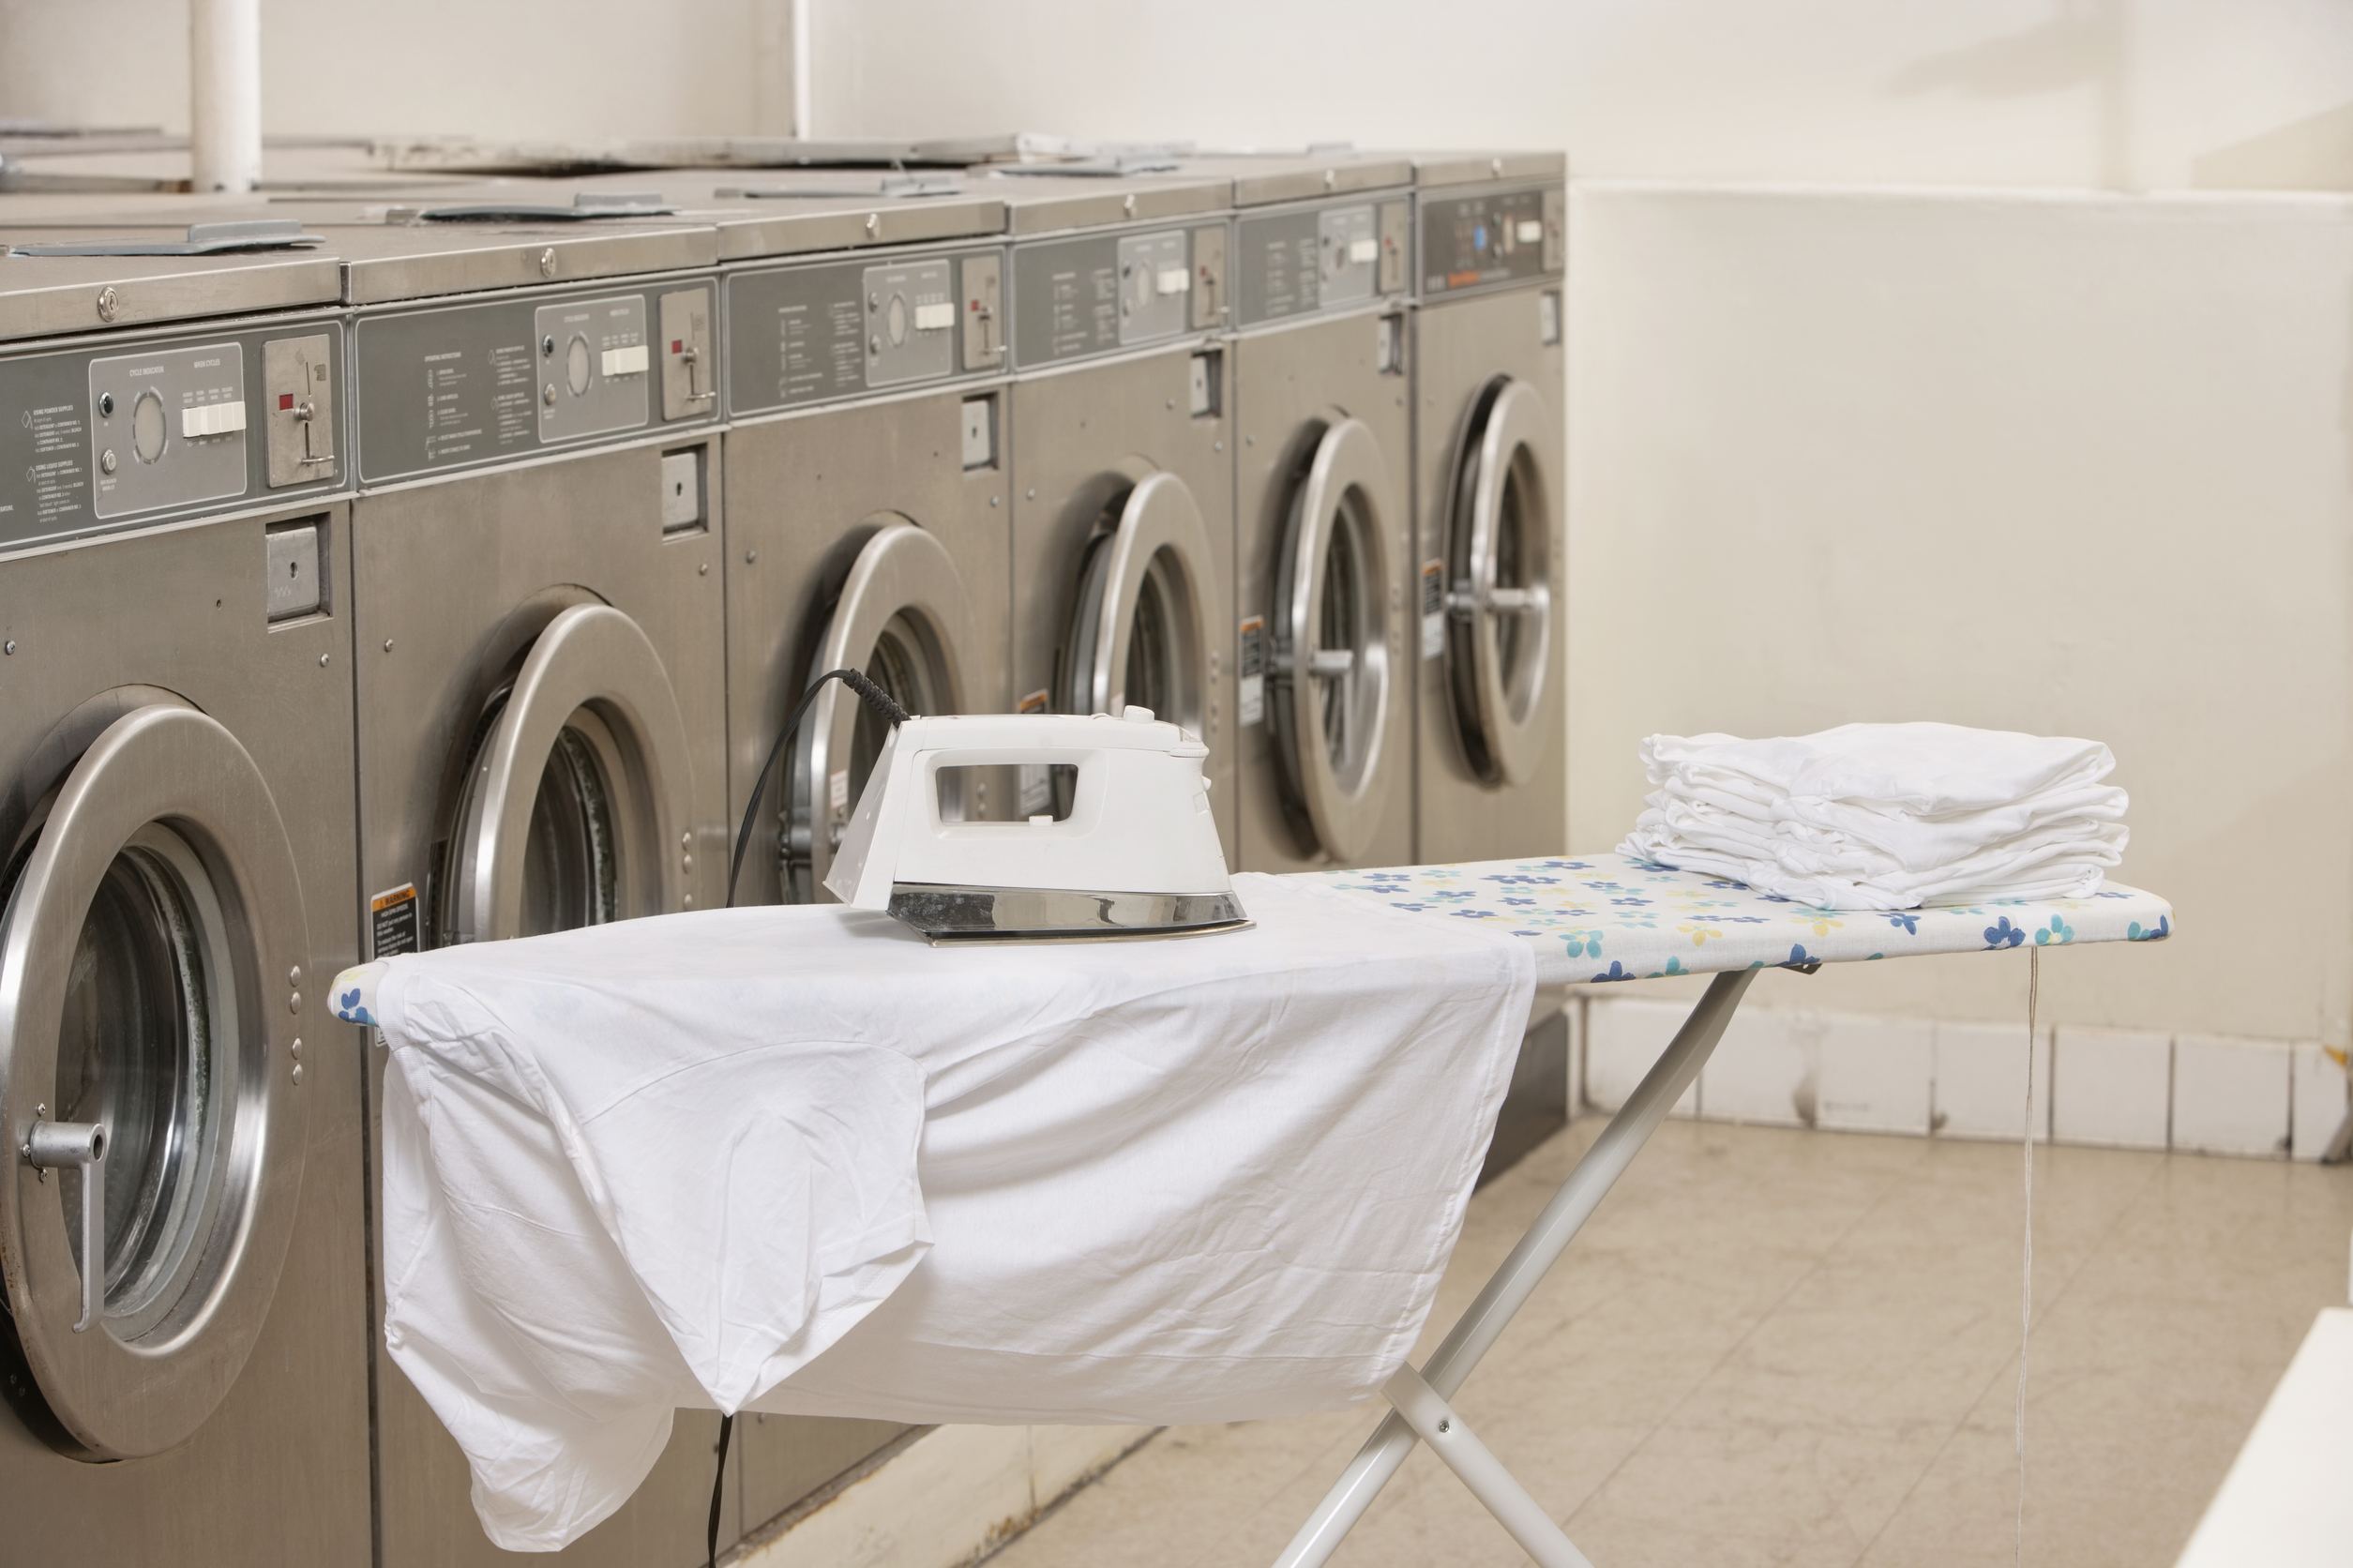 Why is It Great to Own a Laundromat Business?